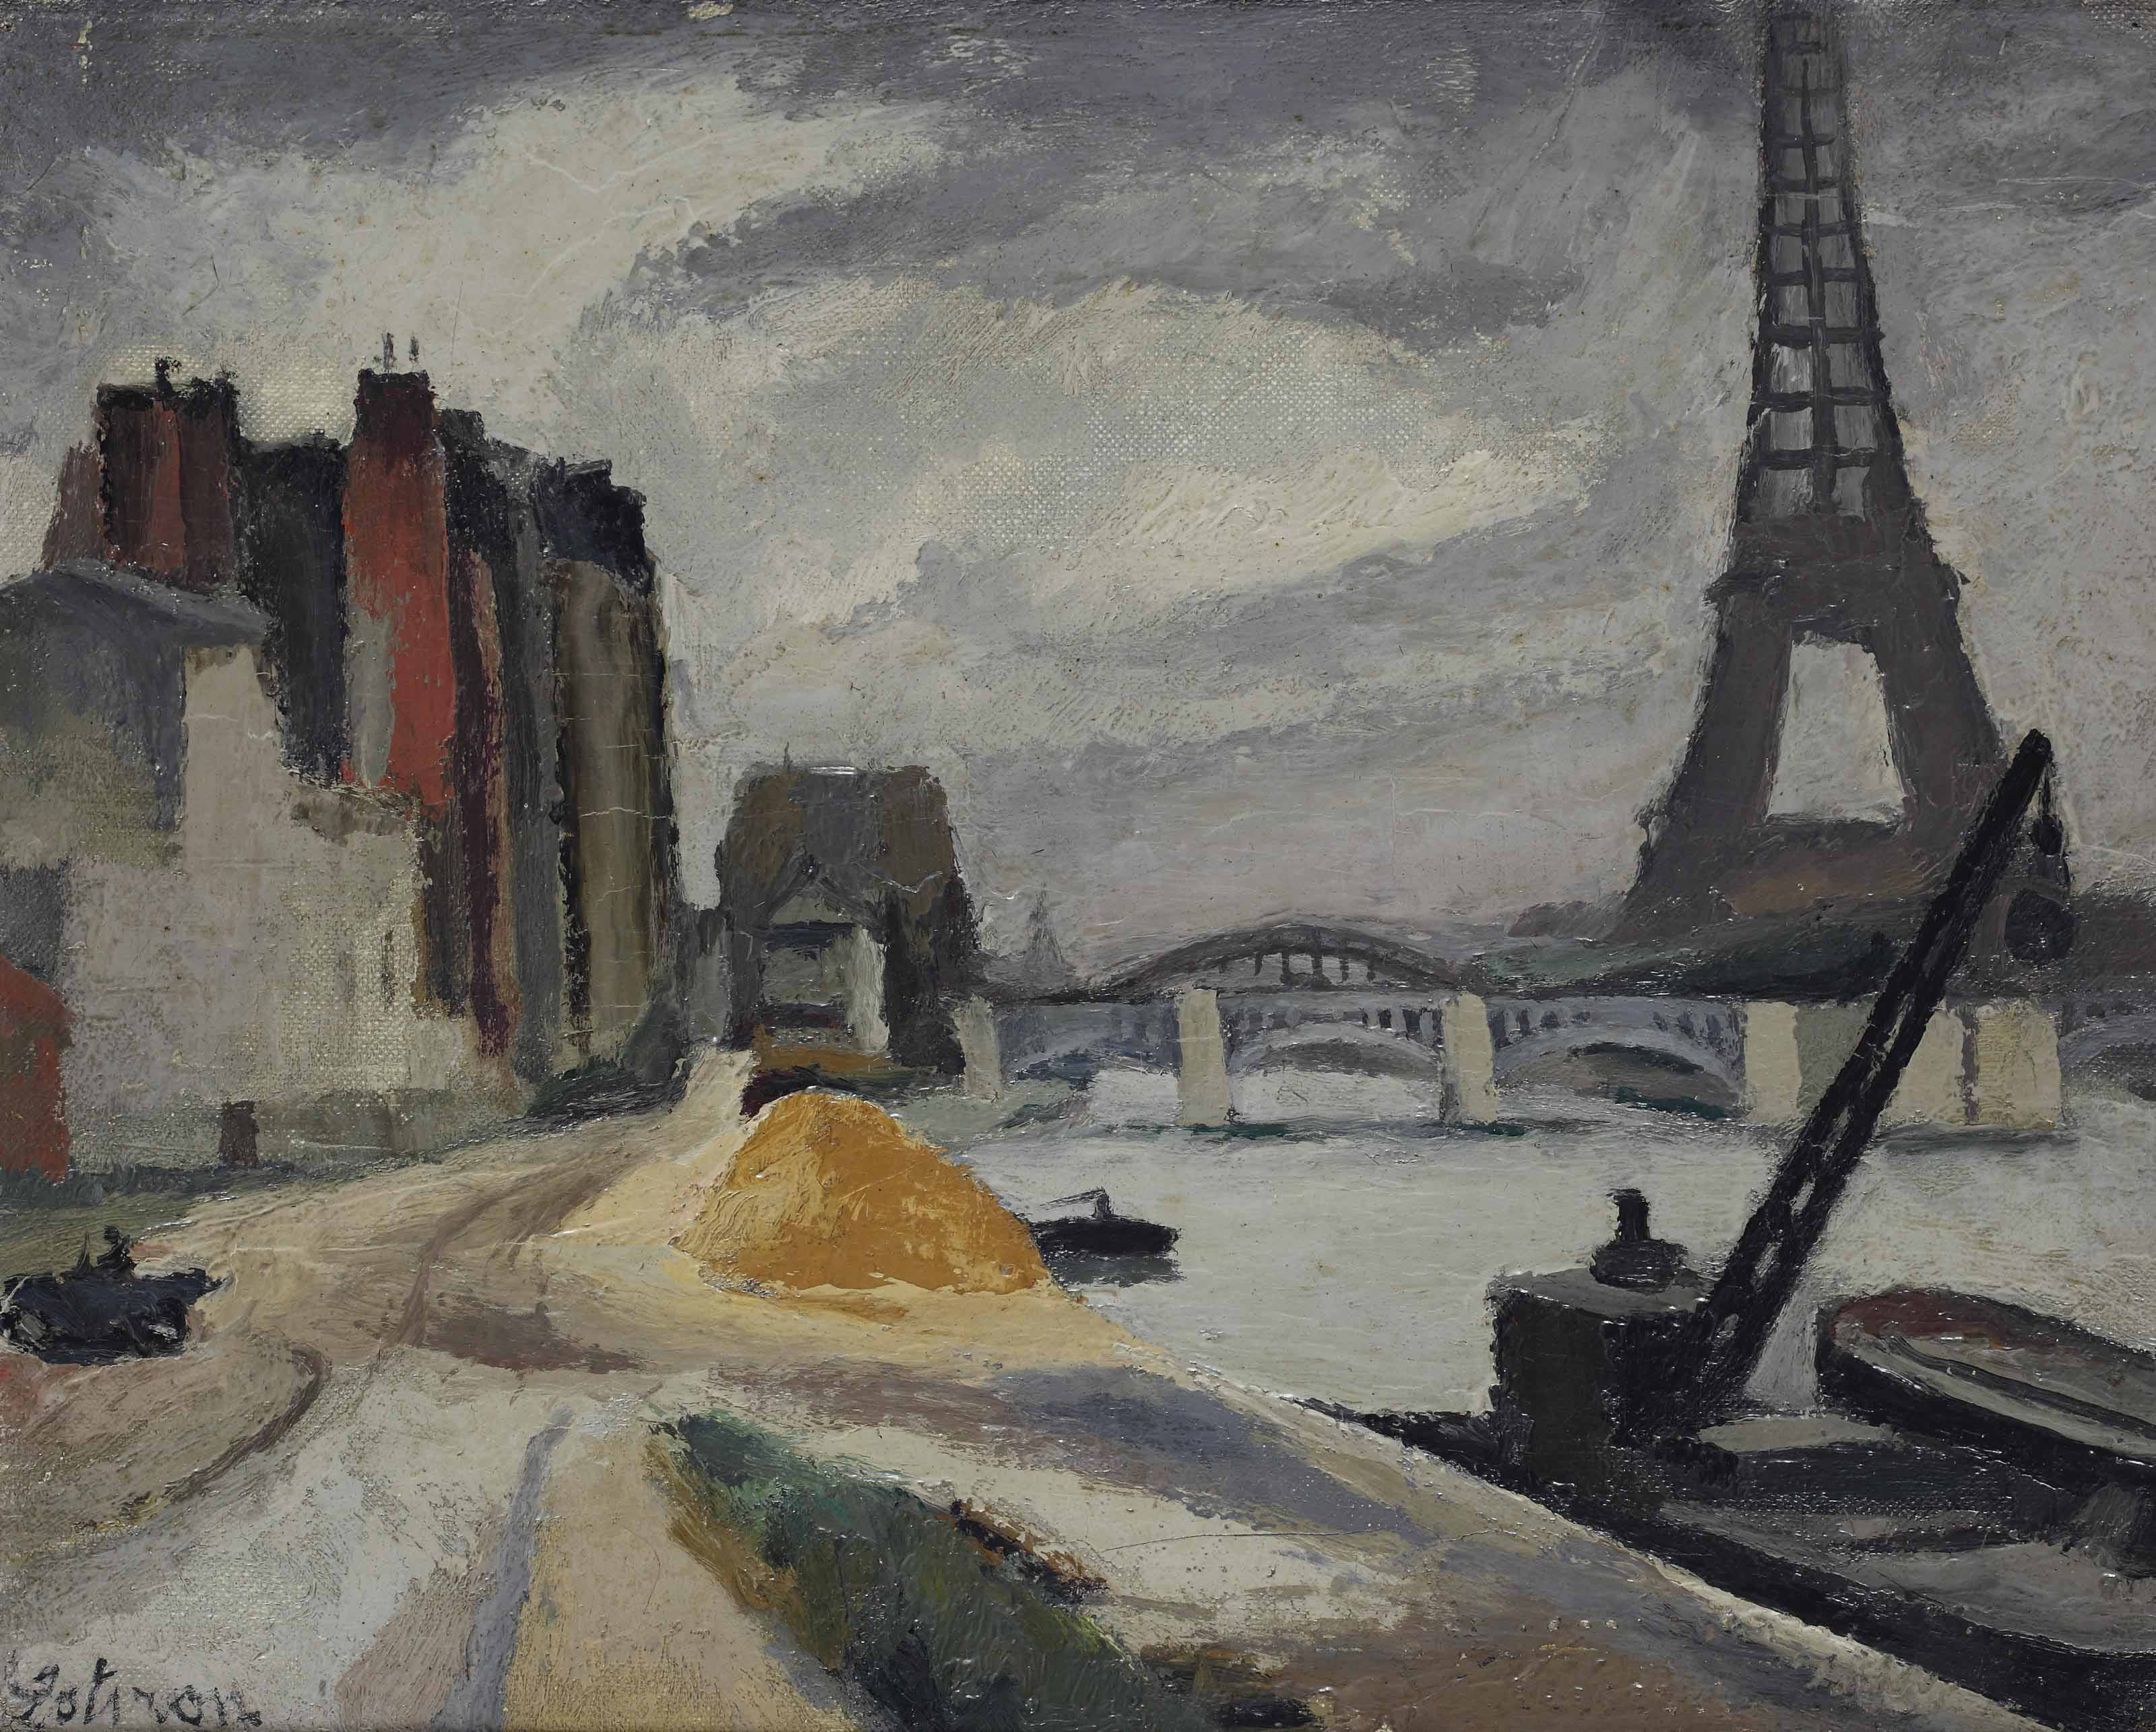 Along the Seine, the Eiffel tower beyond